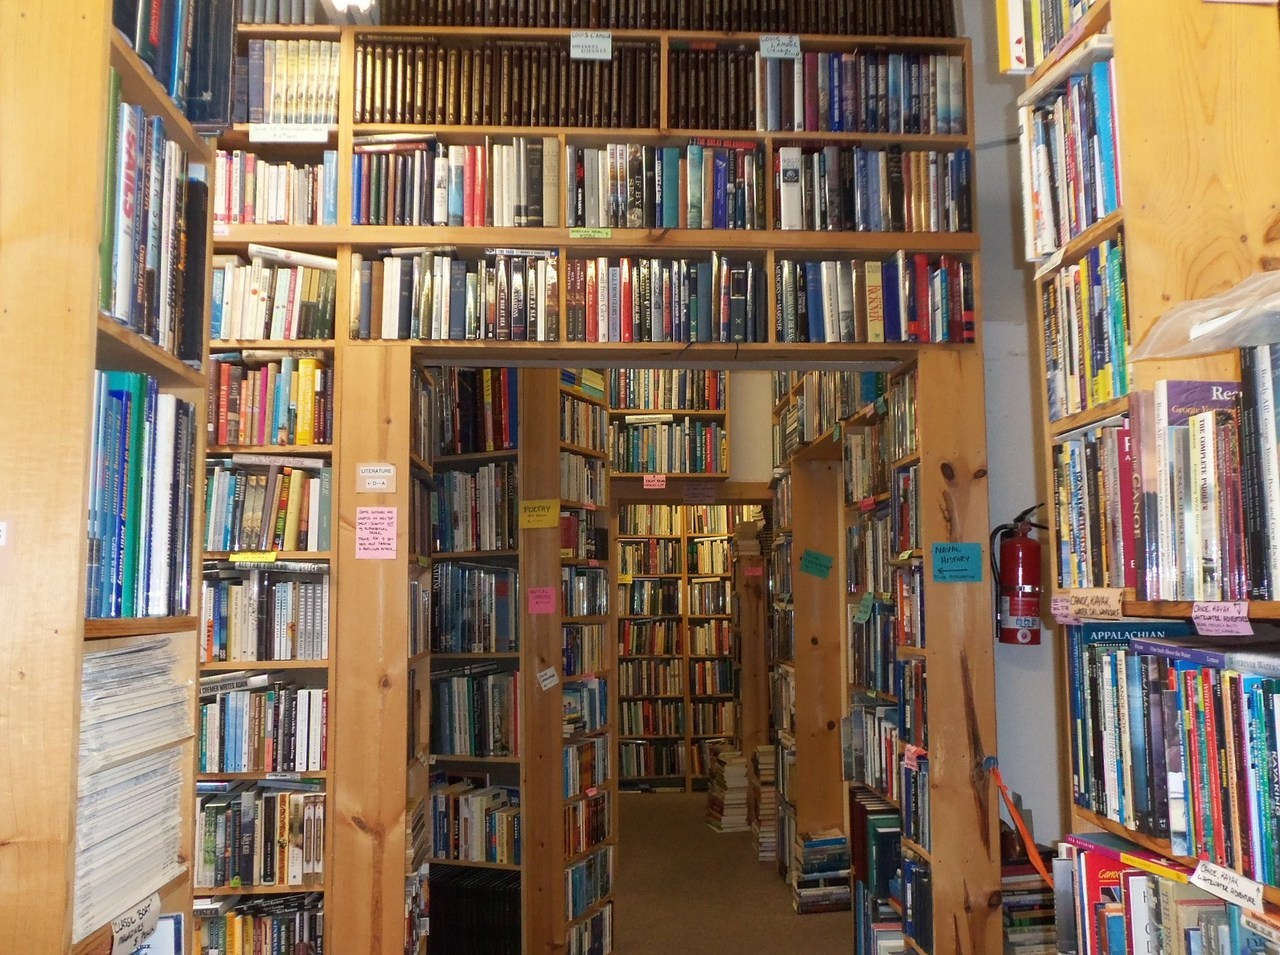 submitted by rushello. This amazing used bookstore.